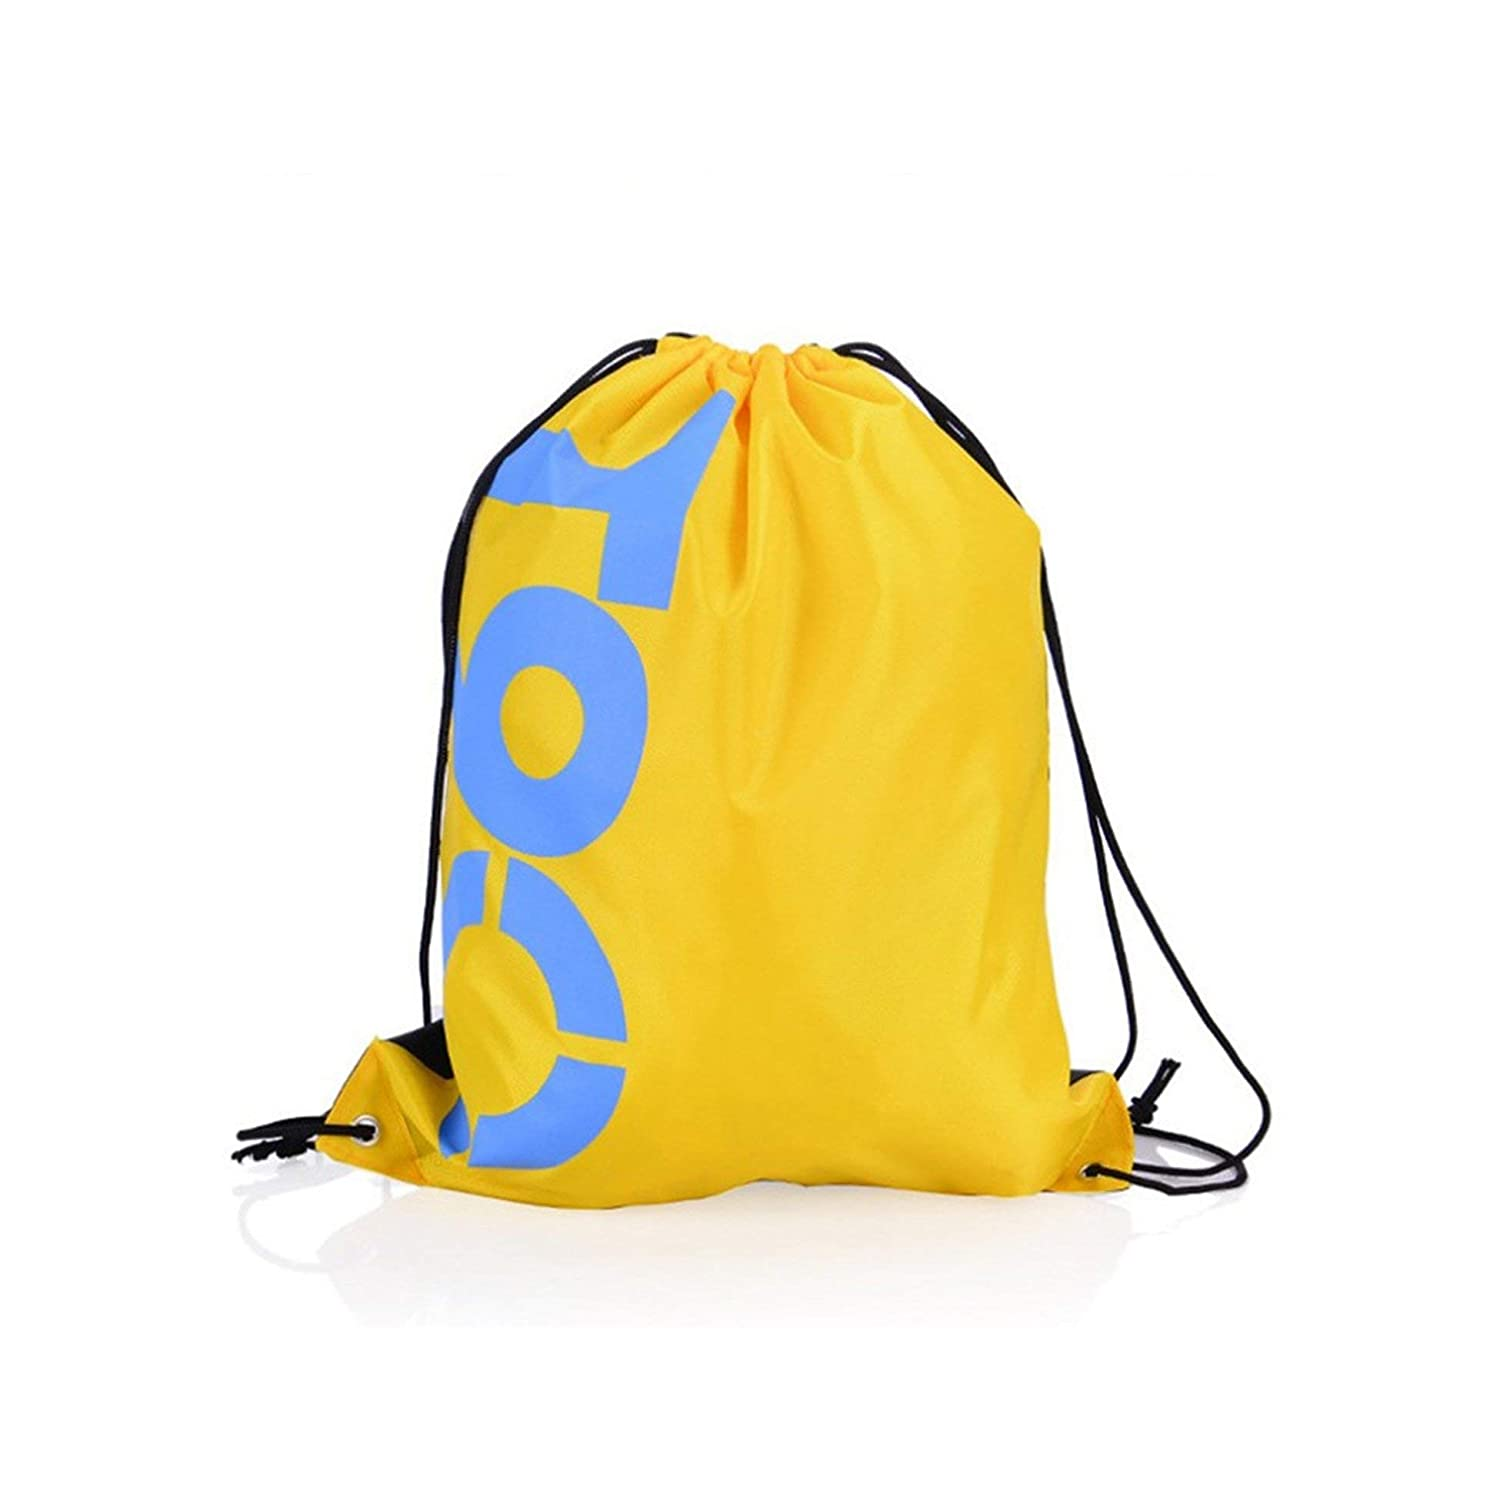 kiwi-dd-Luggage Packing Organizers 4133Cm Waterproof Travel Shoulders Storage Shoes Bag Drawstring Backpack for Baby Kids Toy Lingerie Makeup,14